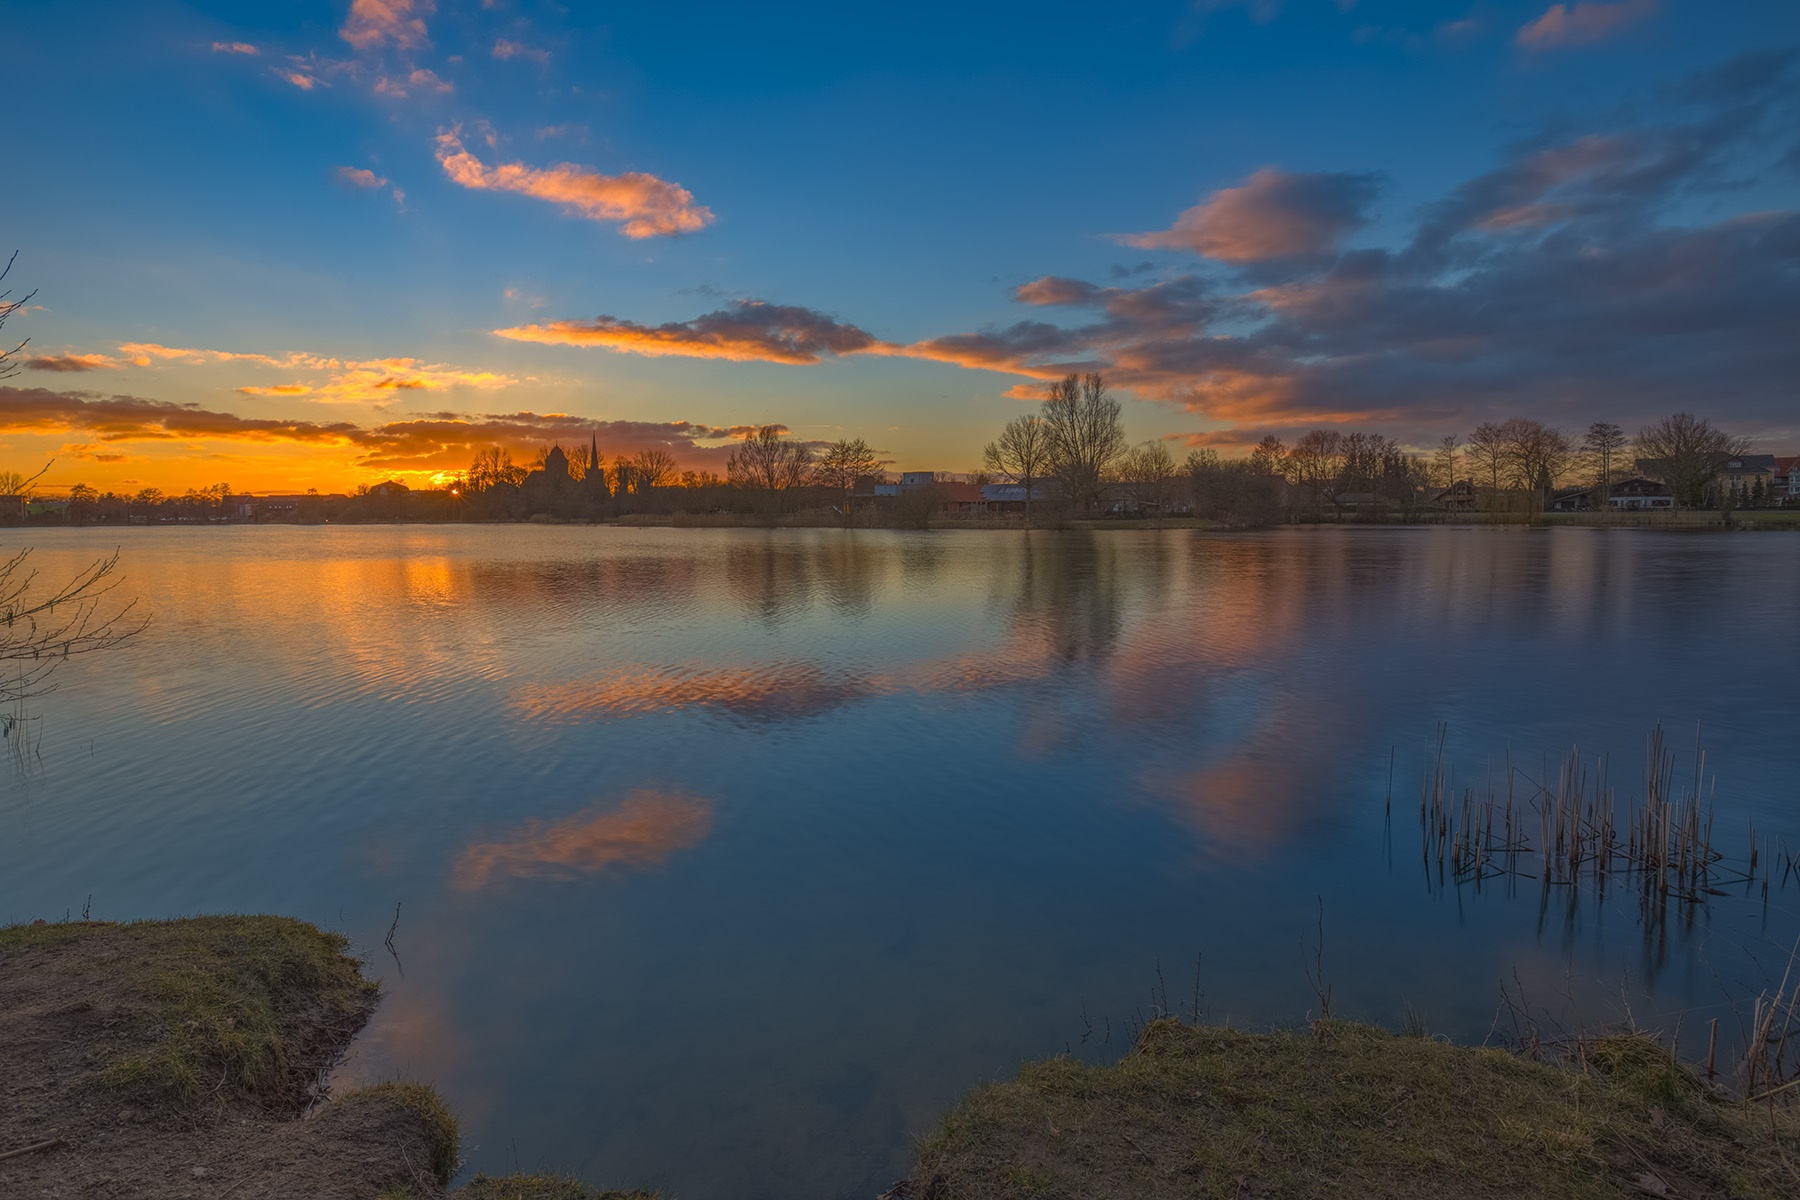 Sunset from March 15th, 2016 by Maik Richter Photography